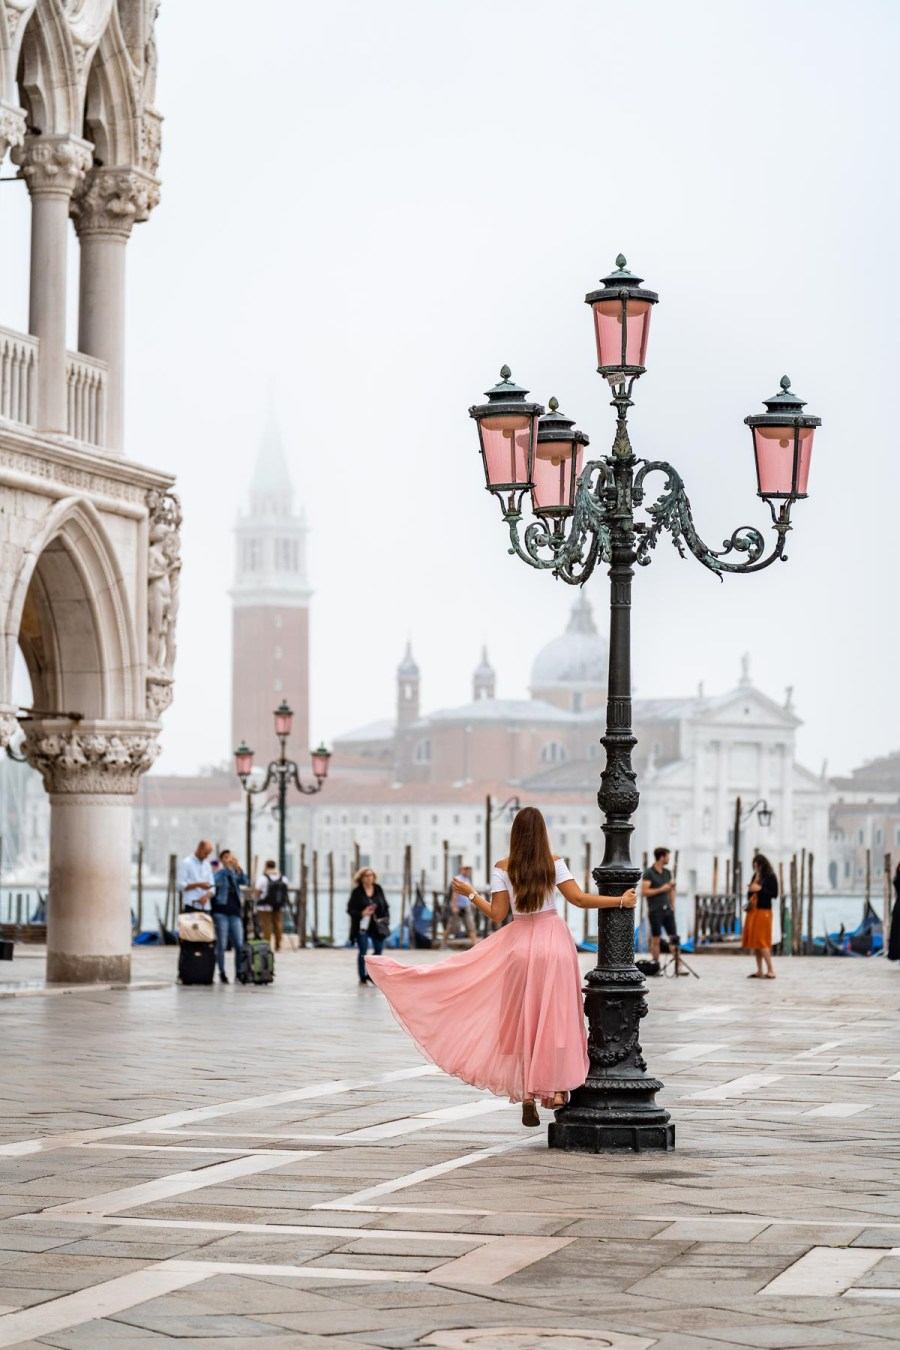 Girl in a pink skirt standing in the middle of Piazza San Marco in Venice, Italy